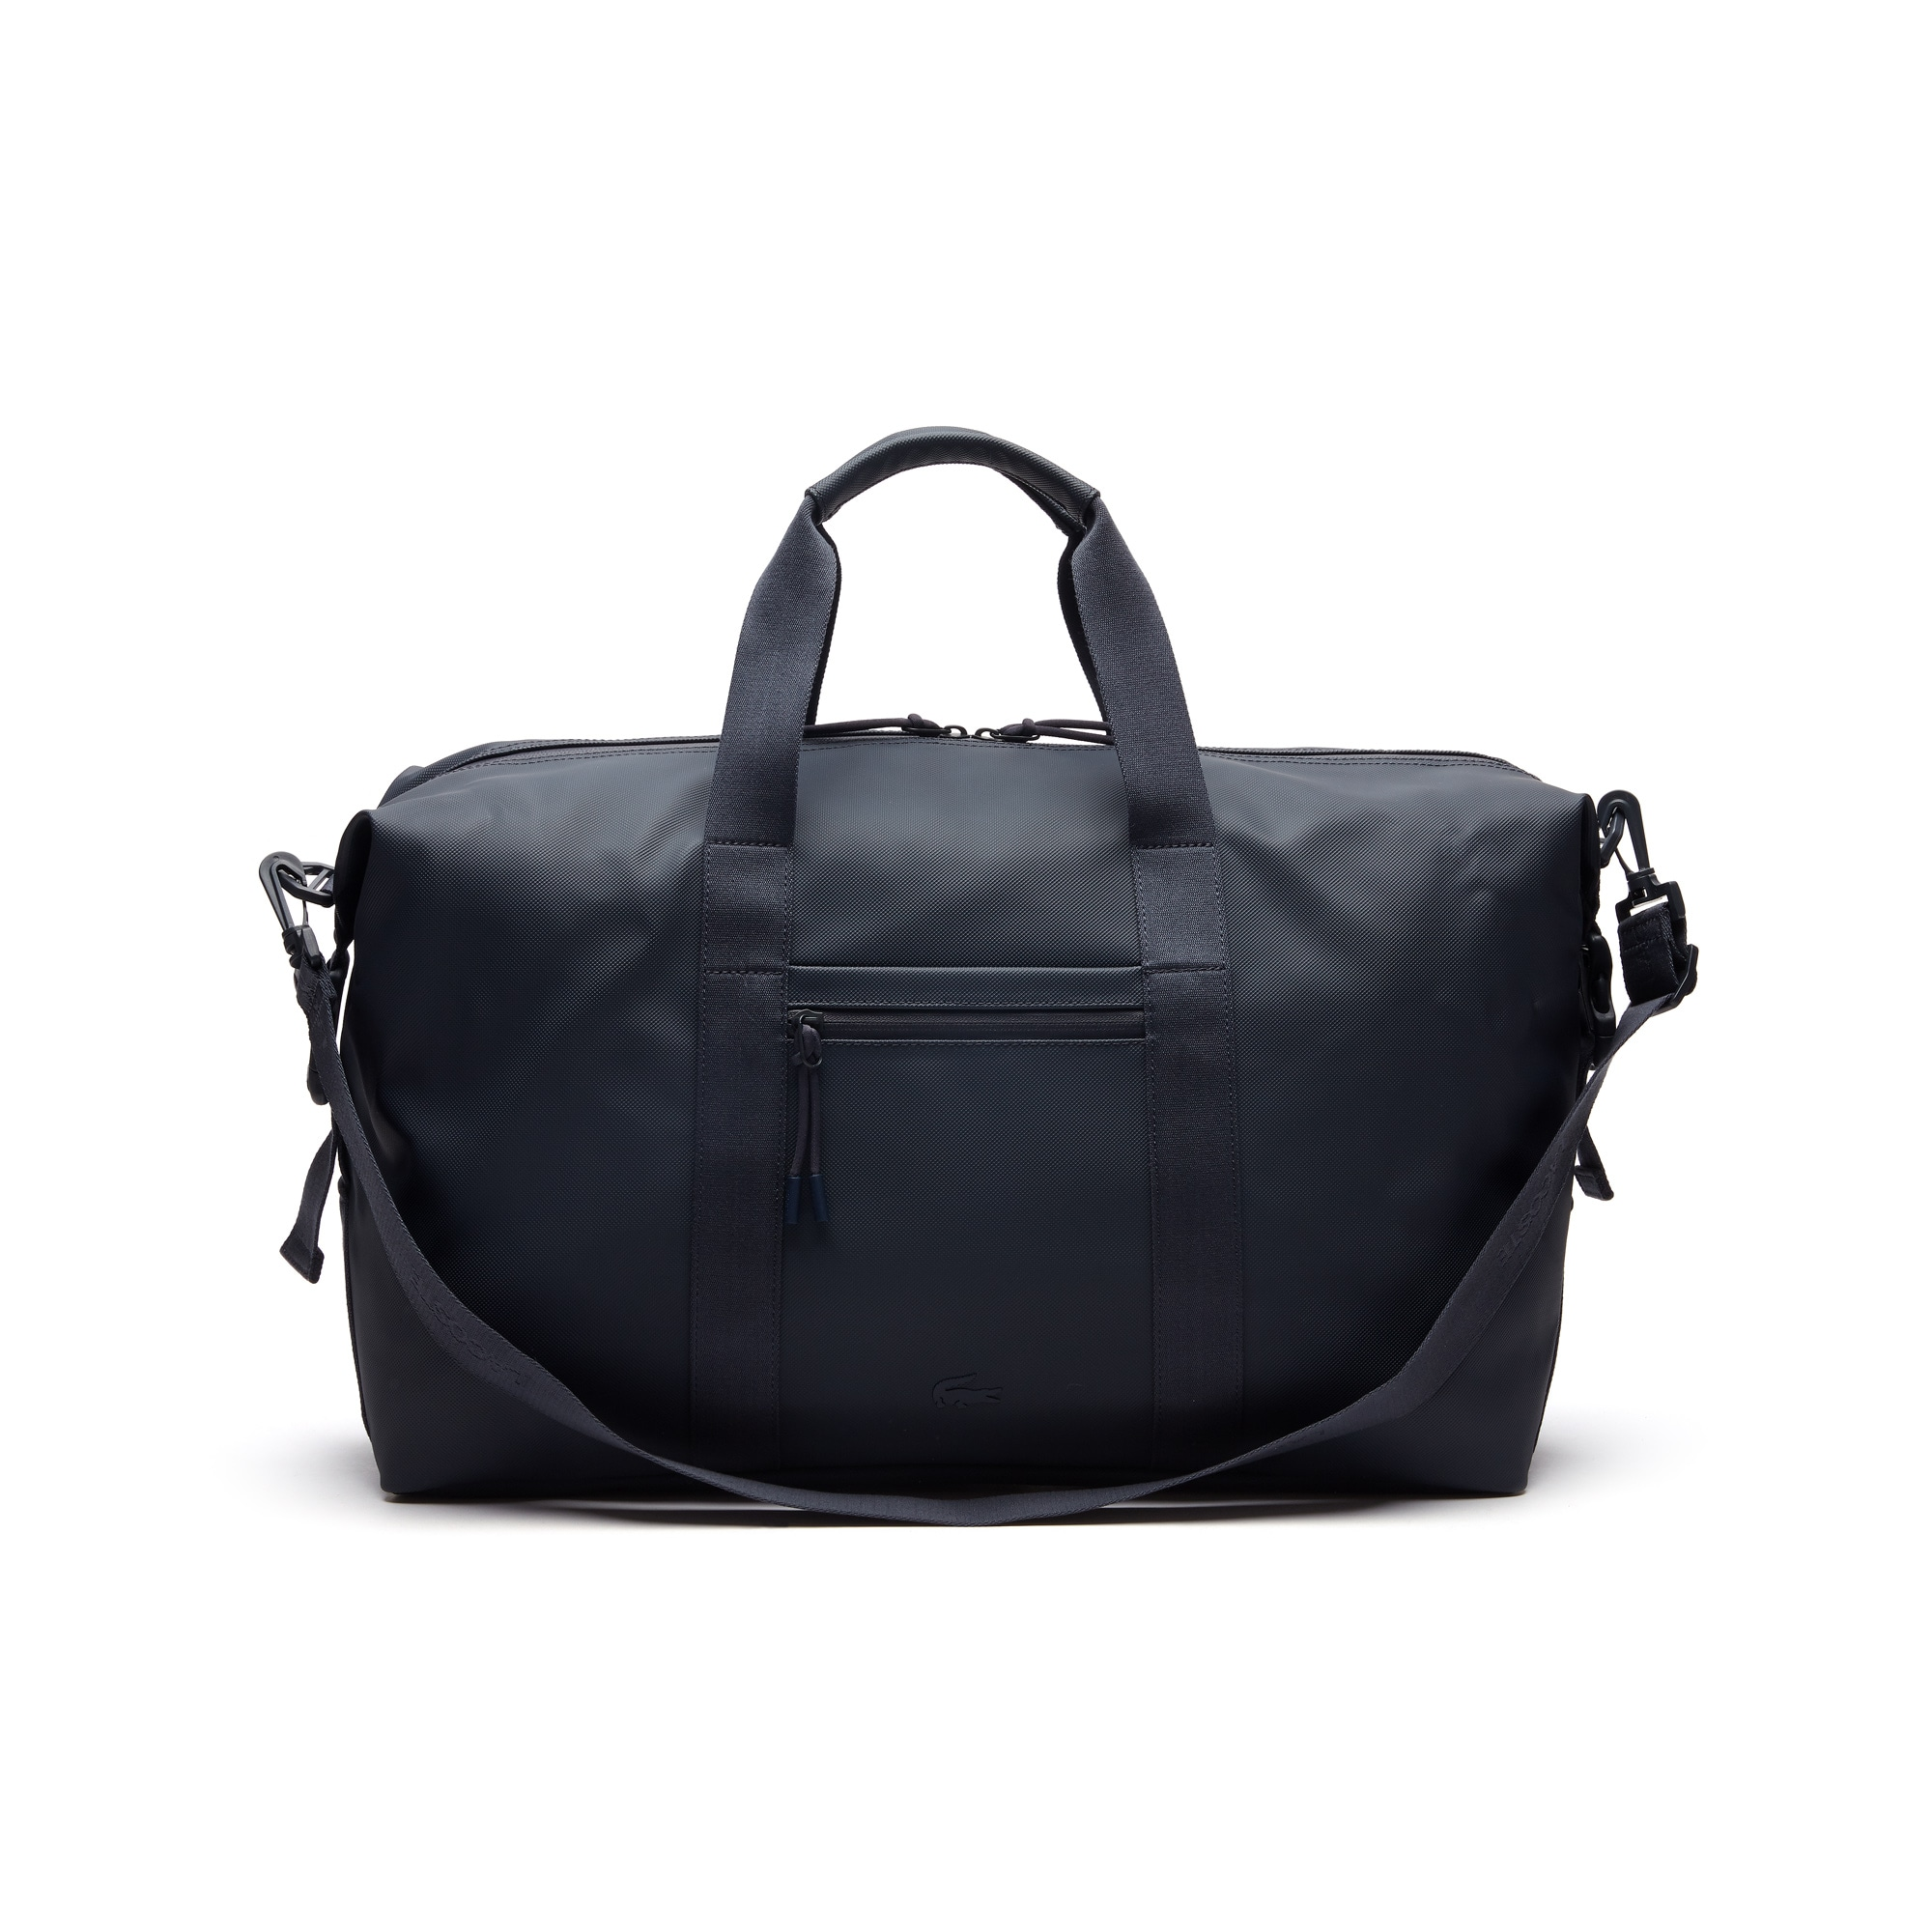 Men's L.12.12 Concept Petit Piqué Weekend Bag